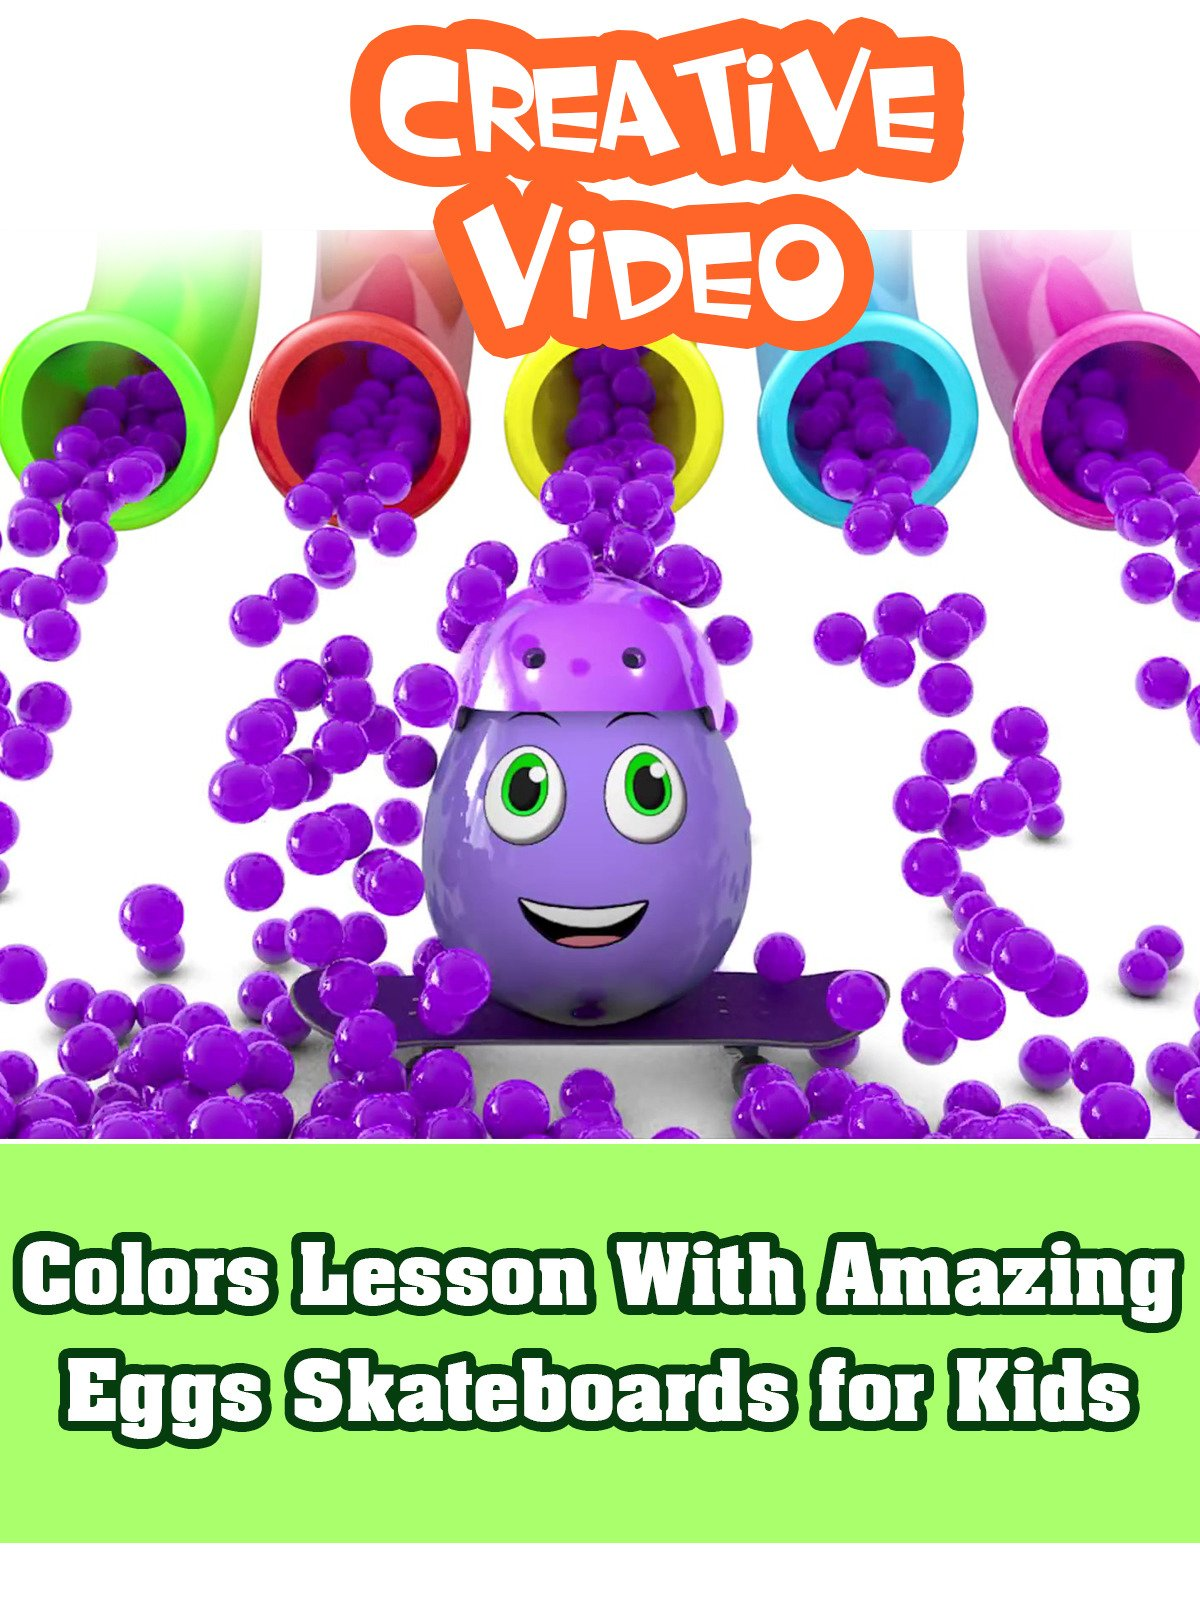 Colors Lesson With Amazing Eggs Skateboards for Kids